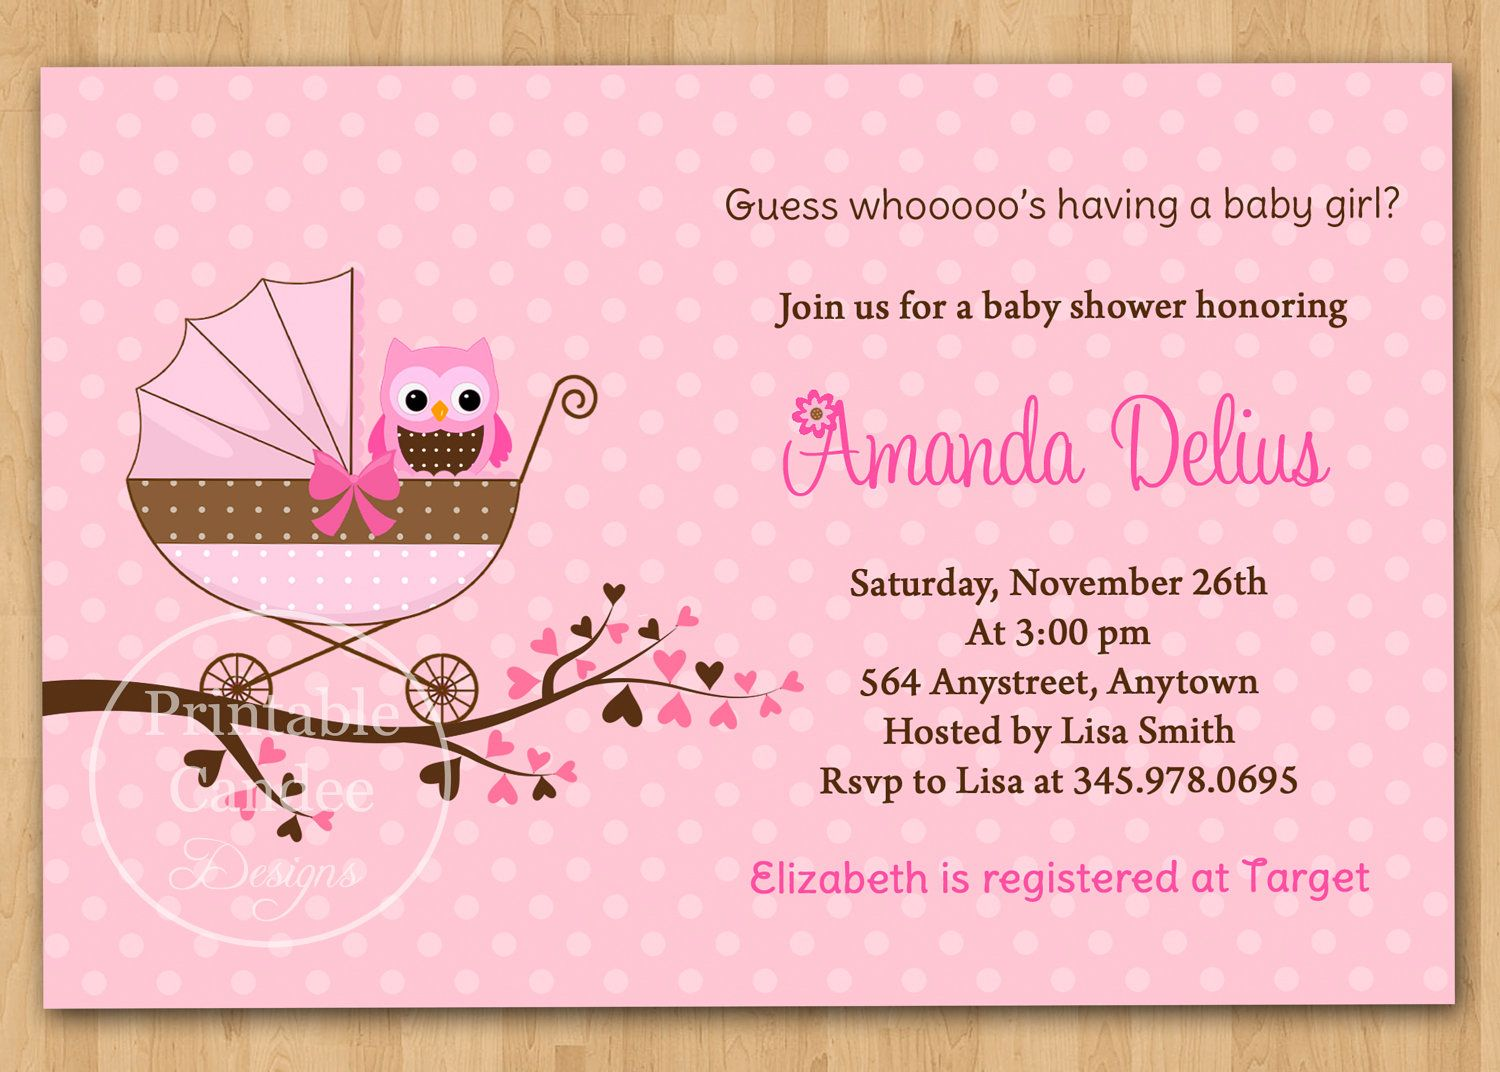 Awesome baby shower invitation wording examples girl ...